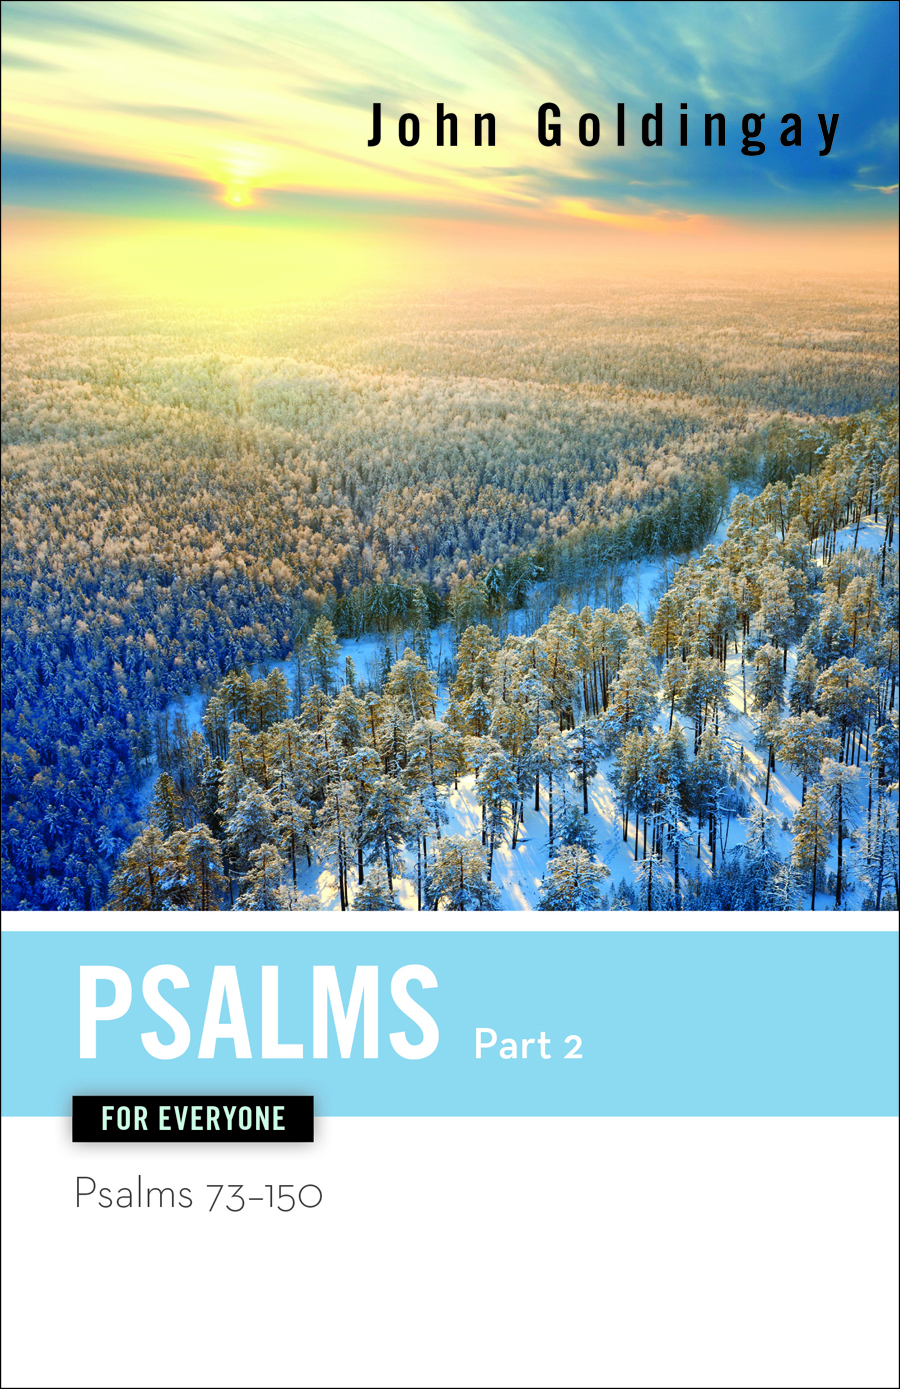 Psalms for Everyone: Part 2: Psalms 73-150